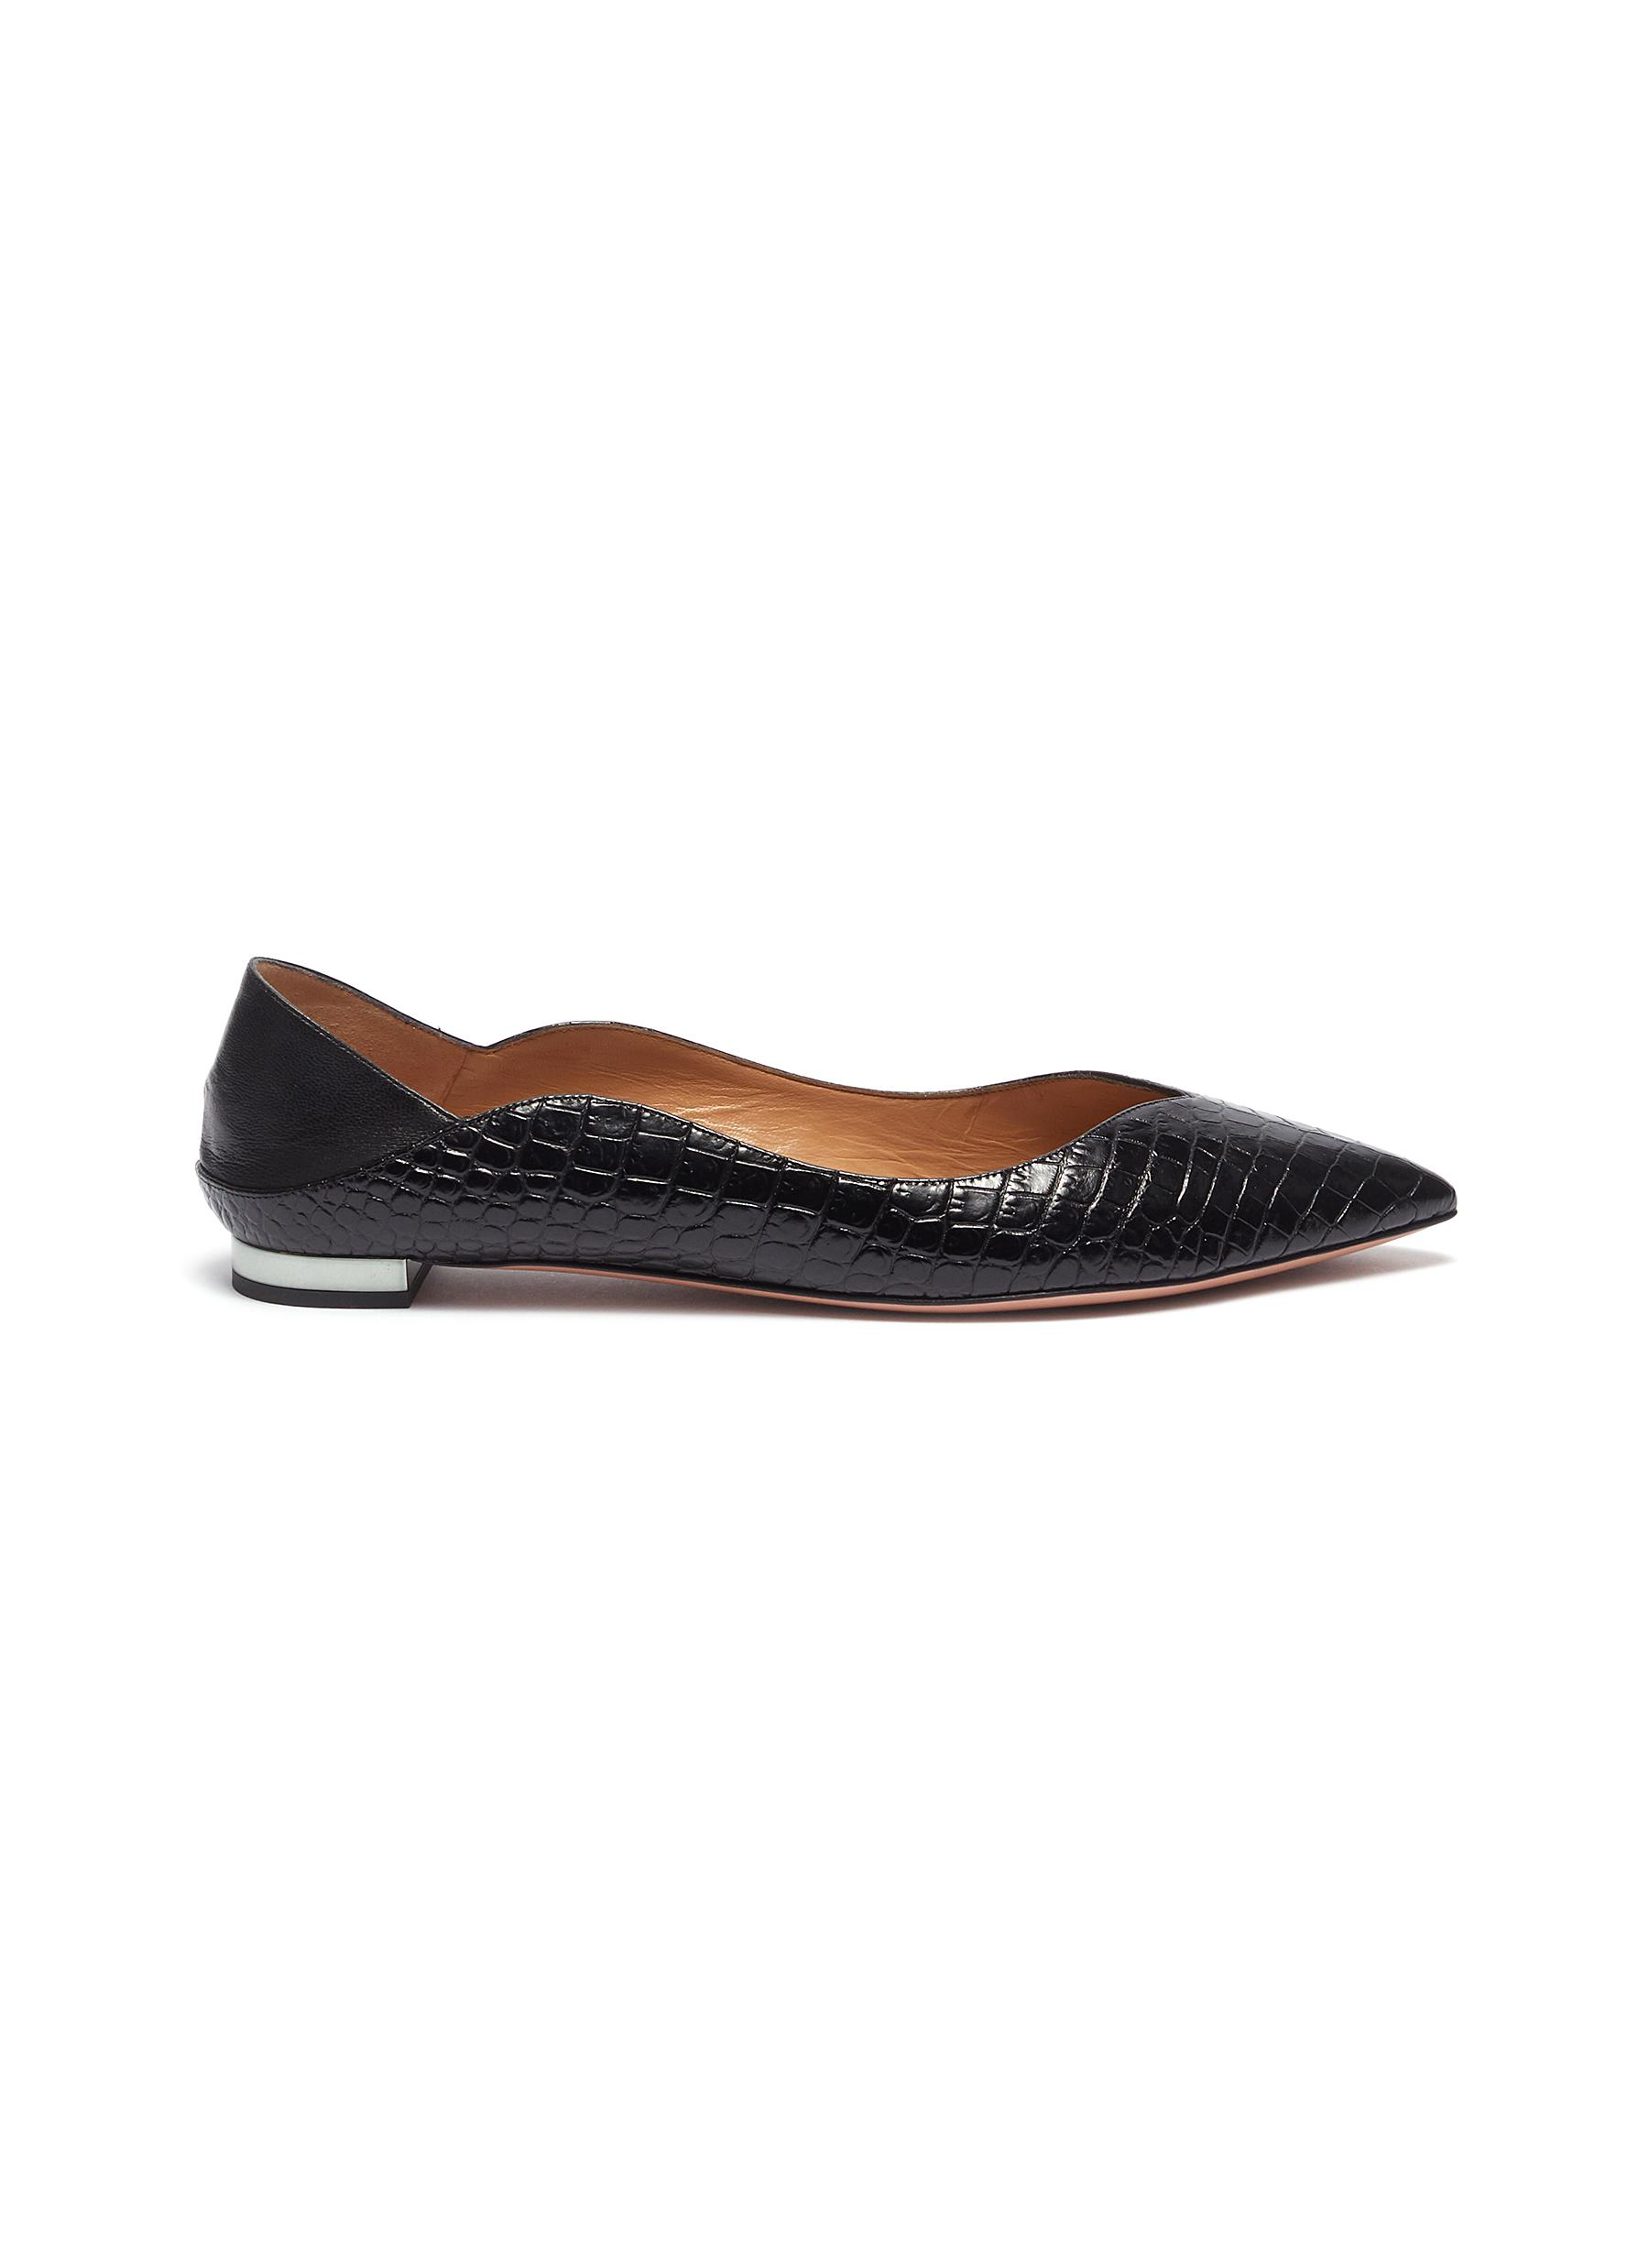 Zen scalloped croc embossed leather step-in flats by Aquazzura